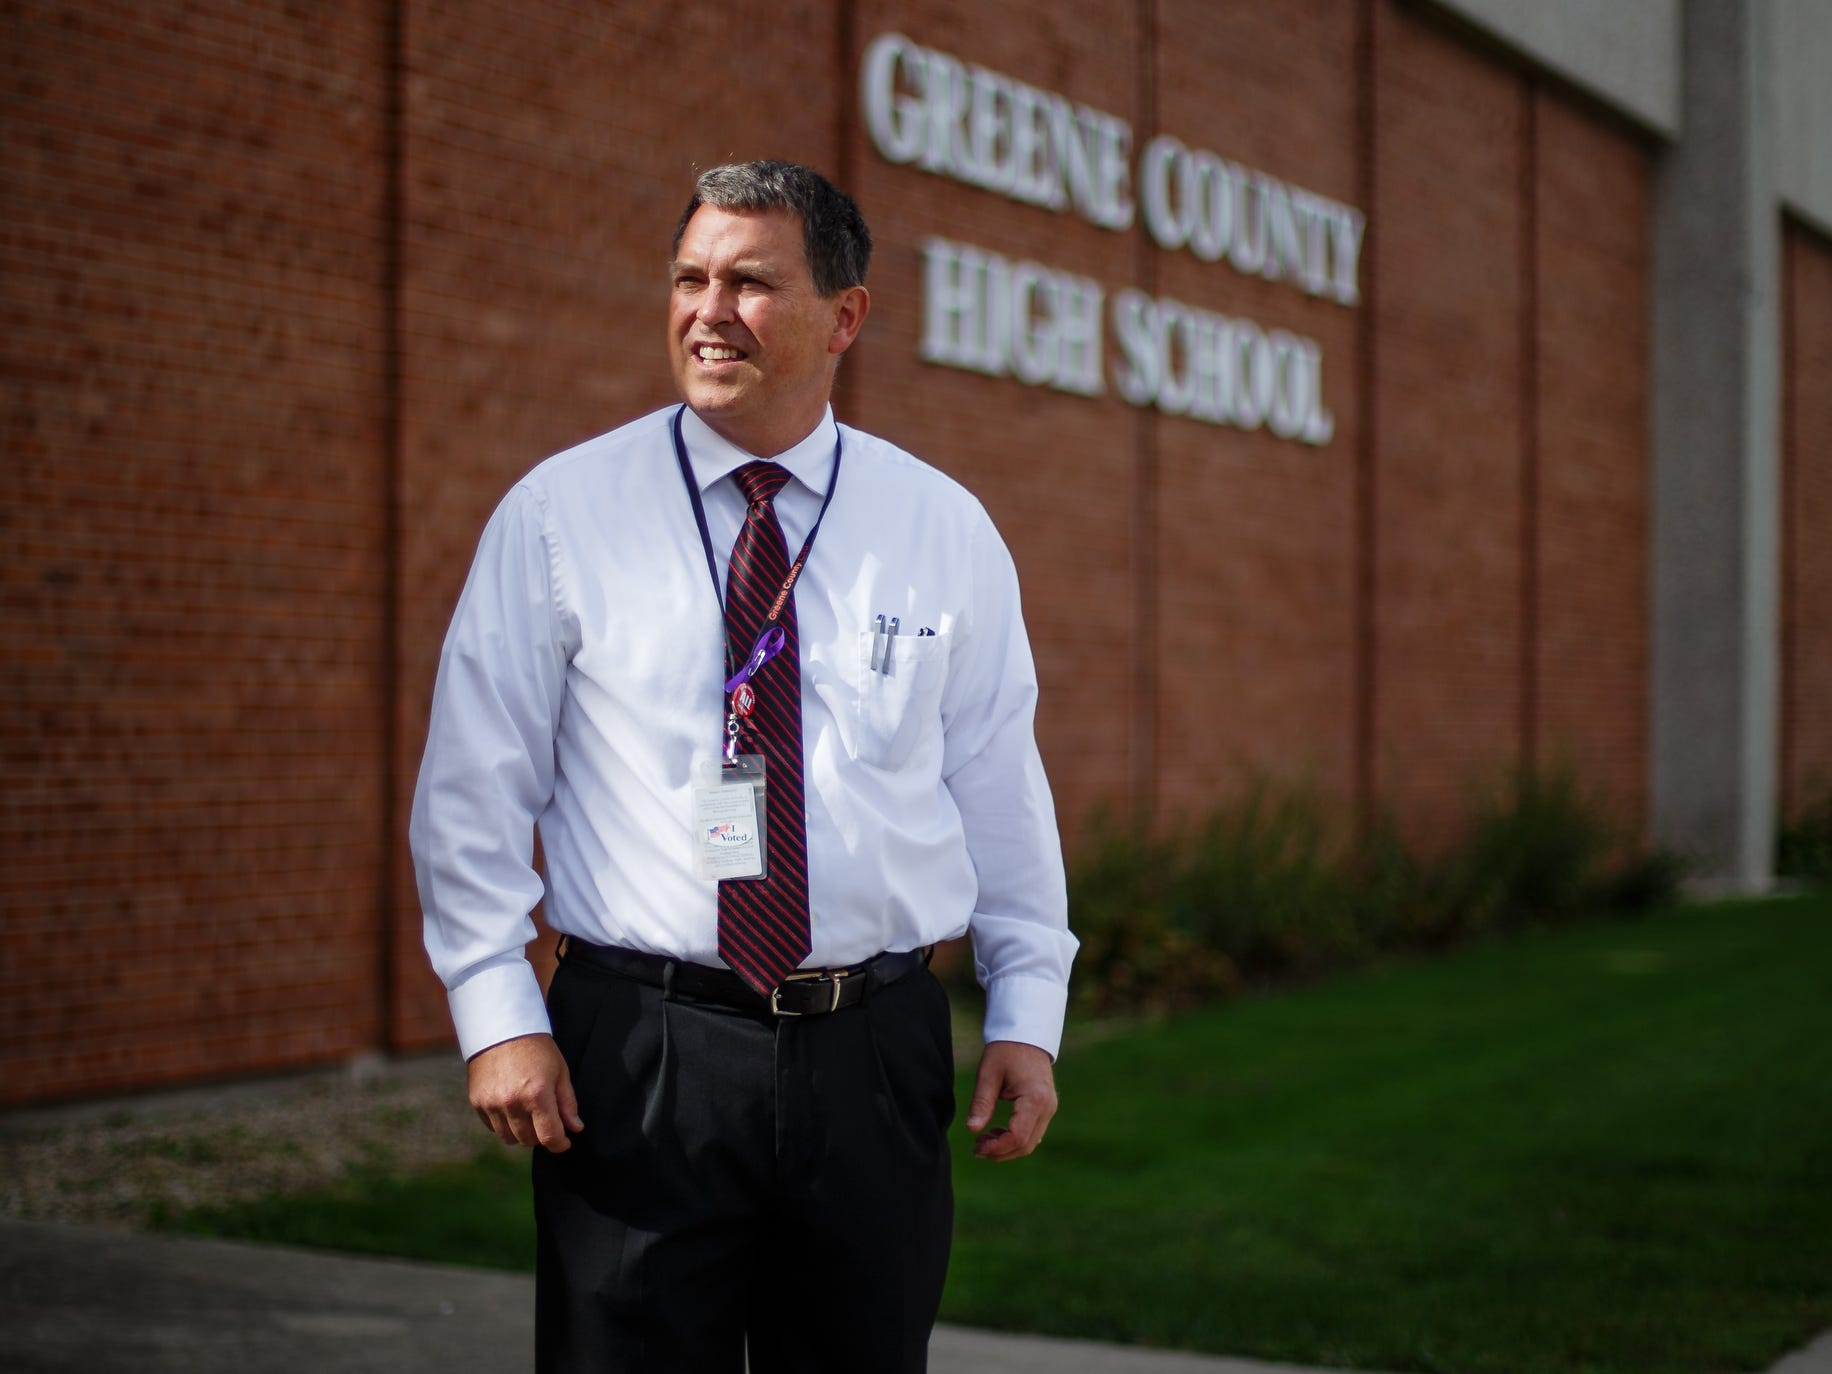 Greene County School District Superintendent Tim Christensen poses for a photo outside the high school on Thursday, Sept. 27, 2018 in Jefferson. An agreement with Pillar Technology, a software consultant in Des Moines, has the district investing in a training program and more technology classes that will help Pillar fill up to 35 jobs in a $1.7 million refurbished office on the towns square.